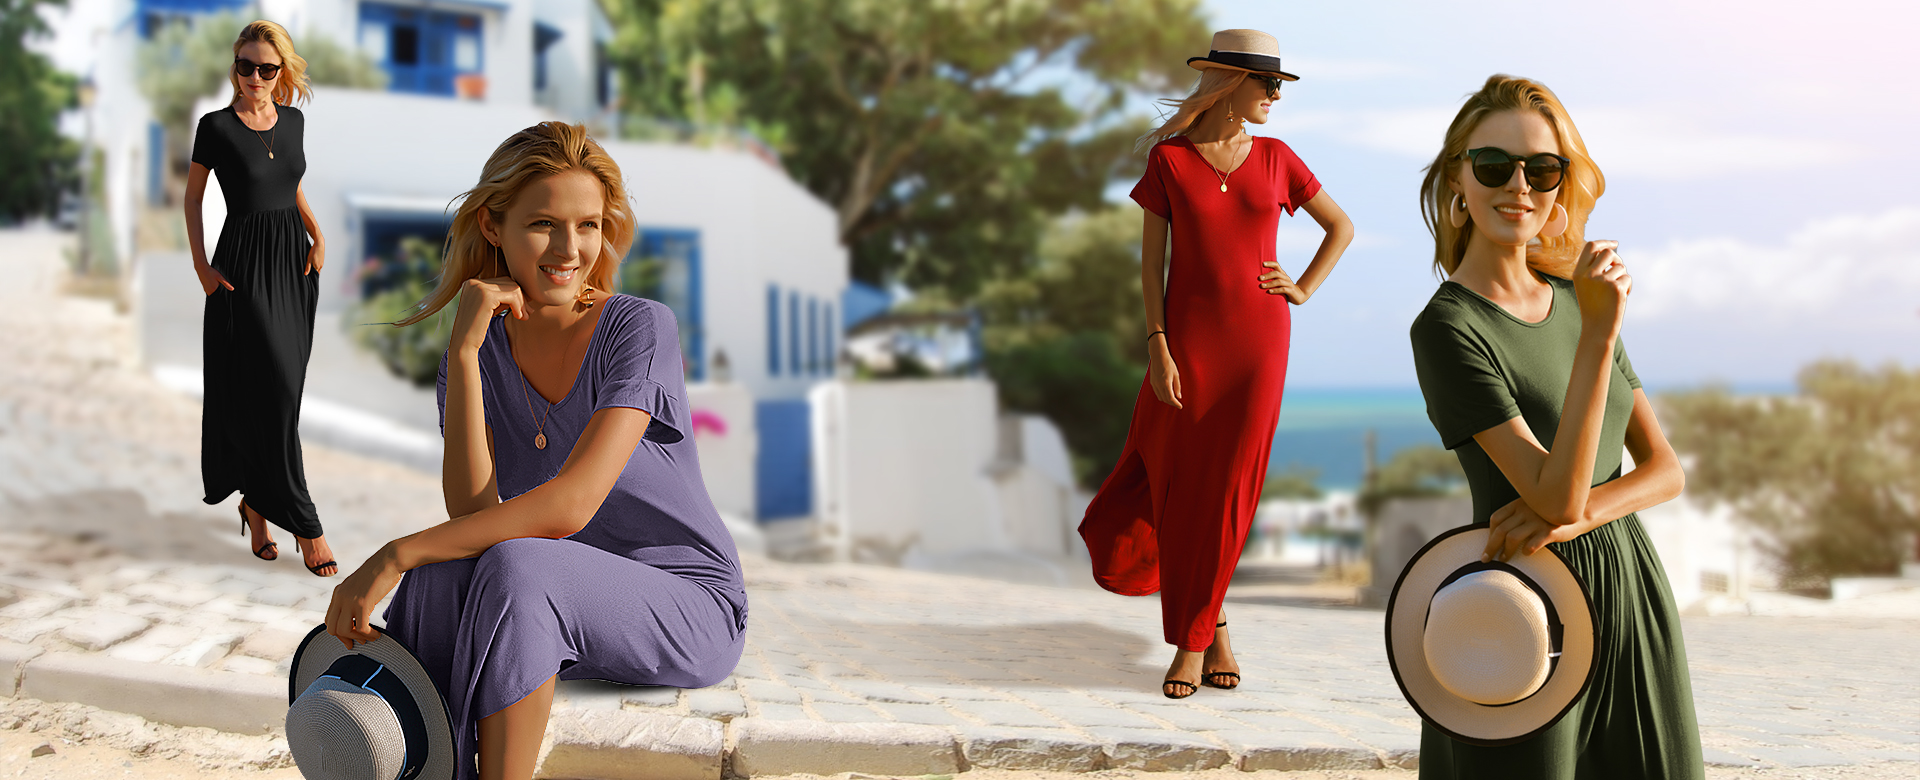 EVERYTHING YOU NEED TO KONW ABOUT MAXI DRESS